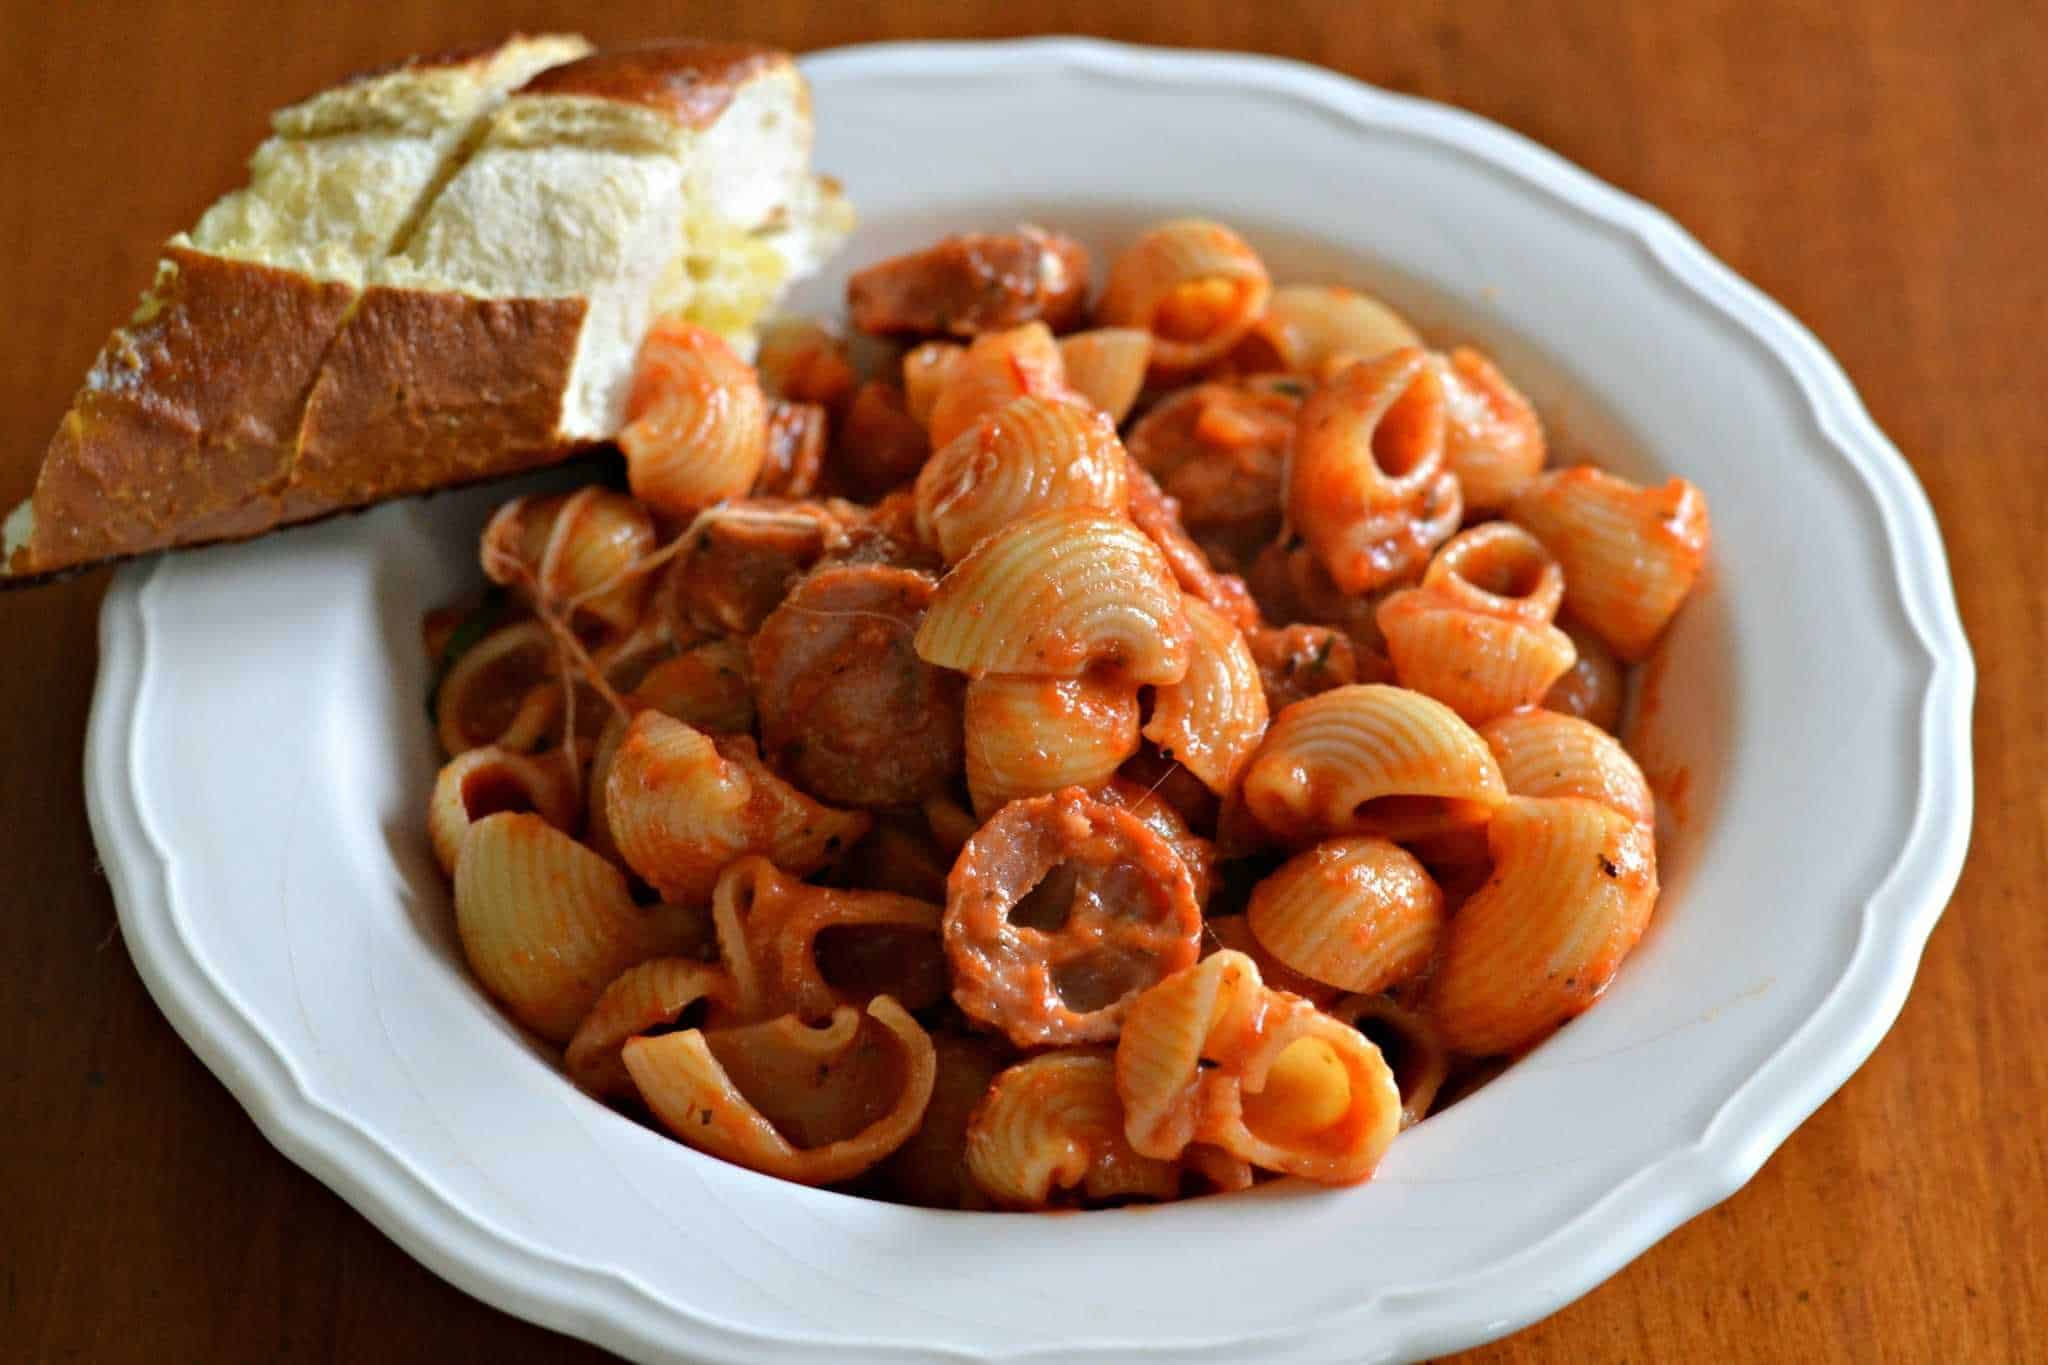 Italian Sausage Bake and piece of French bread